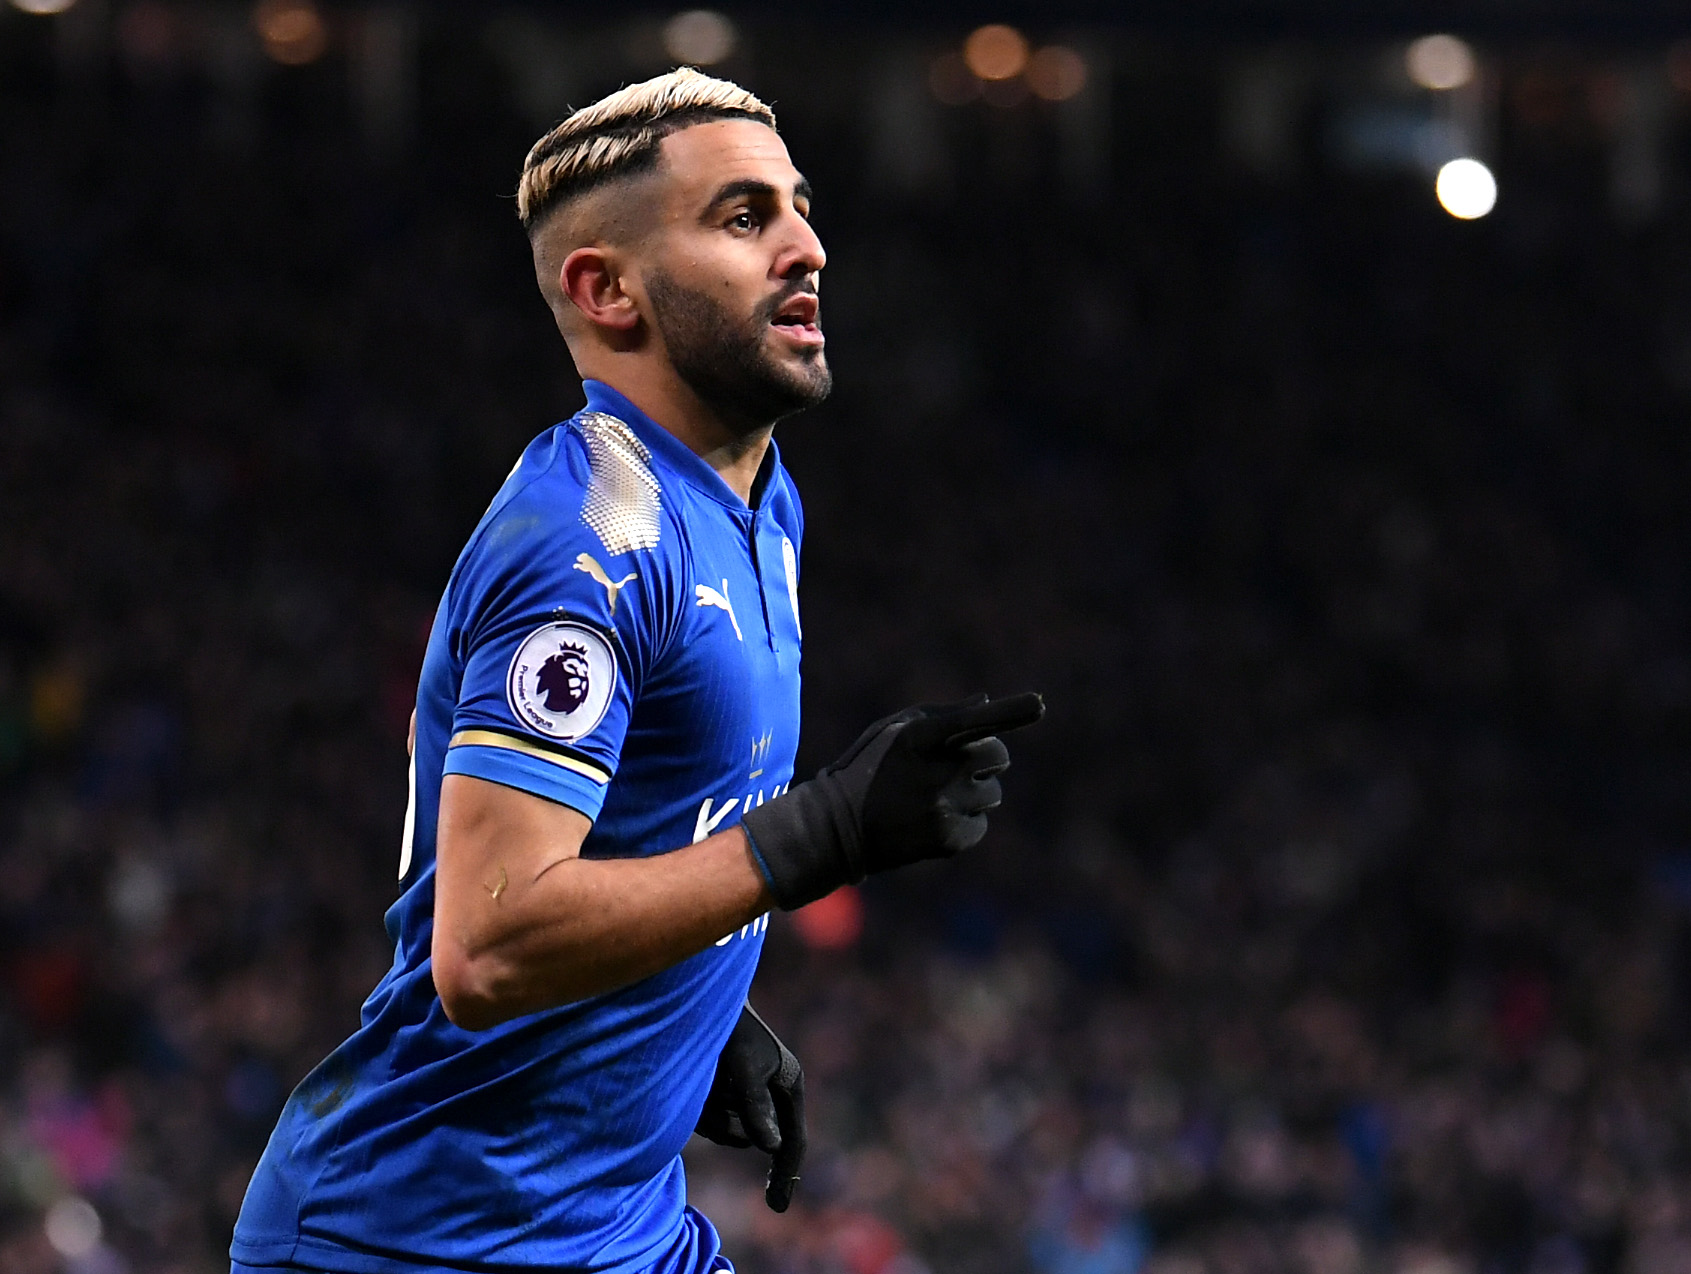 Manchester City: Riyad Mahrez To City